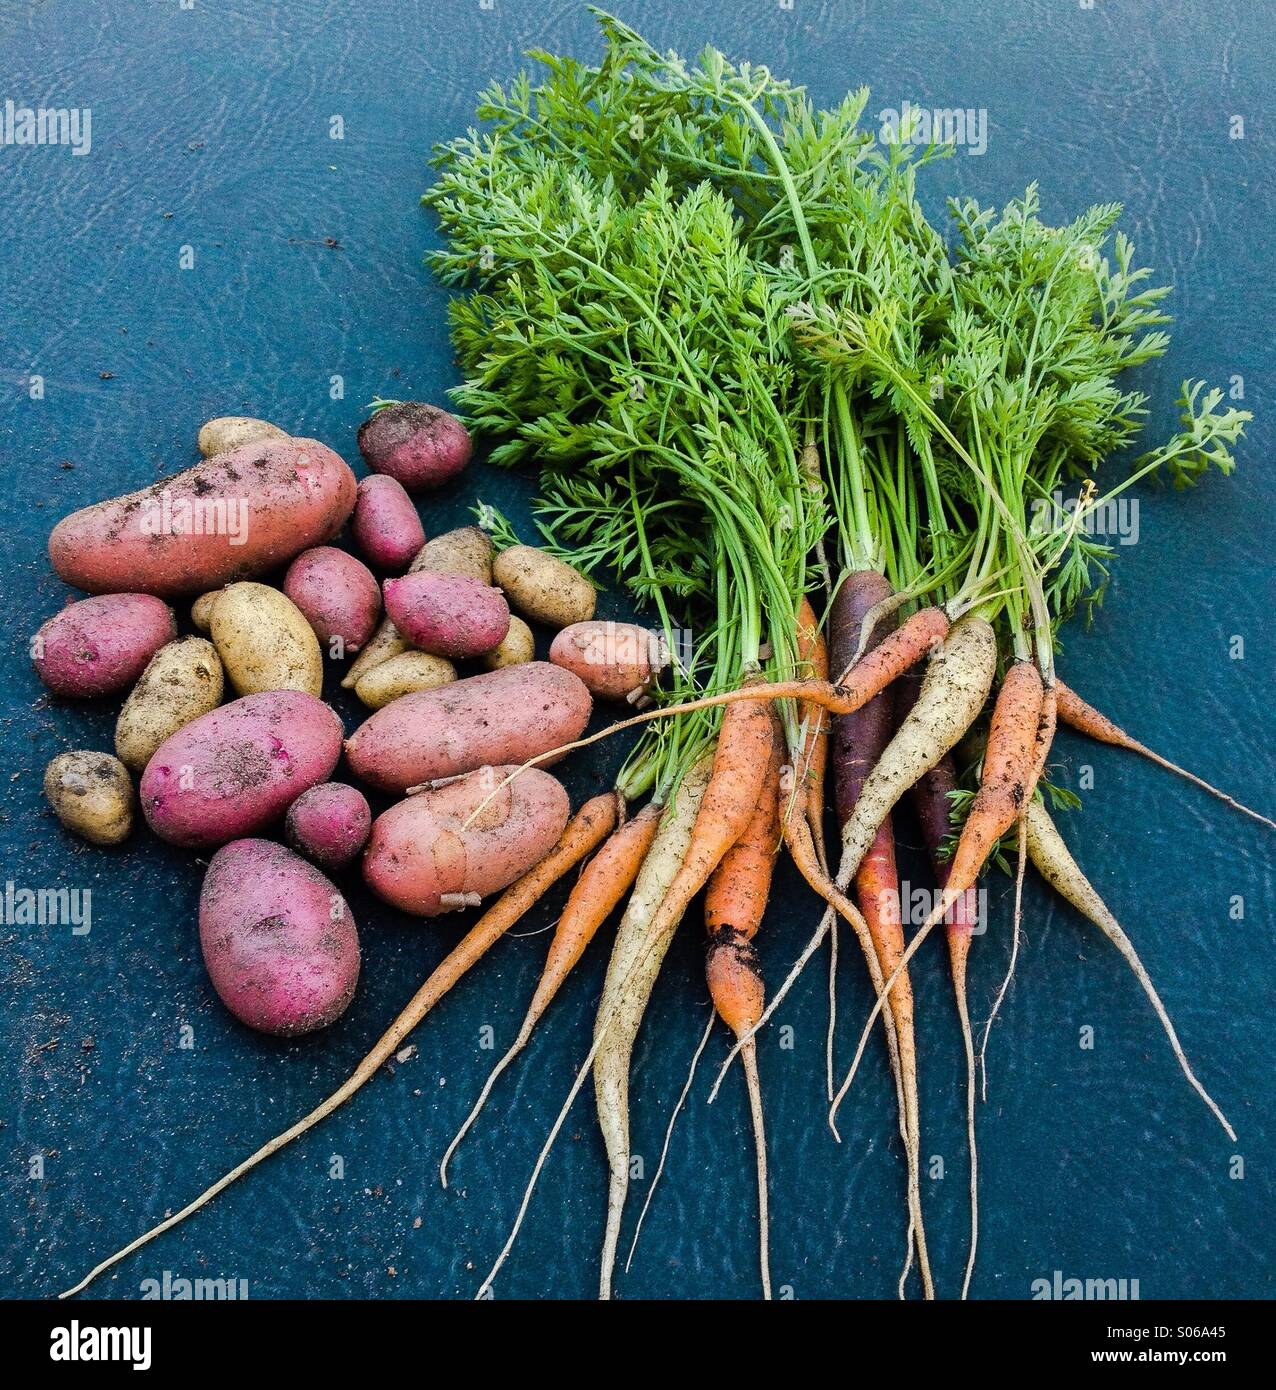 Root vegetables, rainbow carrots and fingerling potatoes. Urban farming. - Stock Image